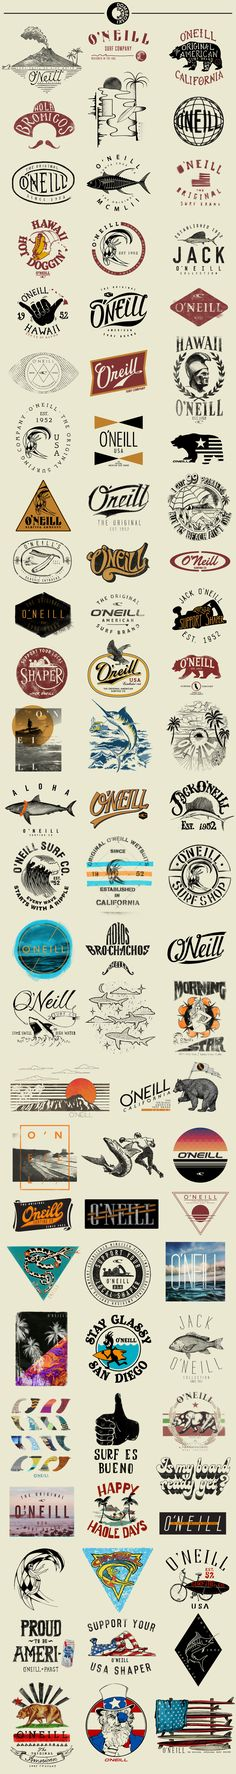 O'Neill T-Shirt Graphics by Ray Dombroski. O'Neill is known as the Original American Surfing Company. It began as a wetsuit company and surf shop, founded by Jack O'Neill in 1952. It continues to be one of the most sought-after surf brands today.